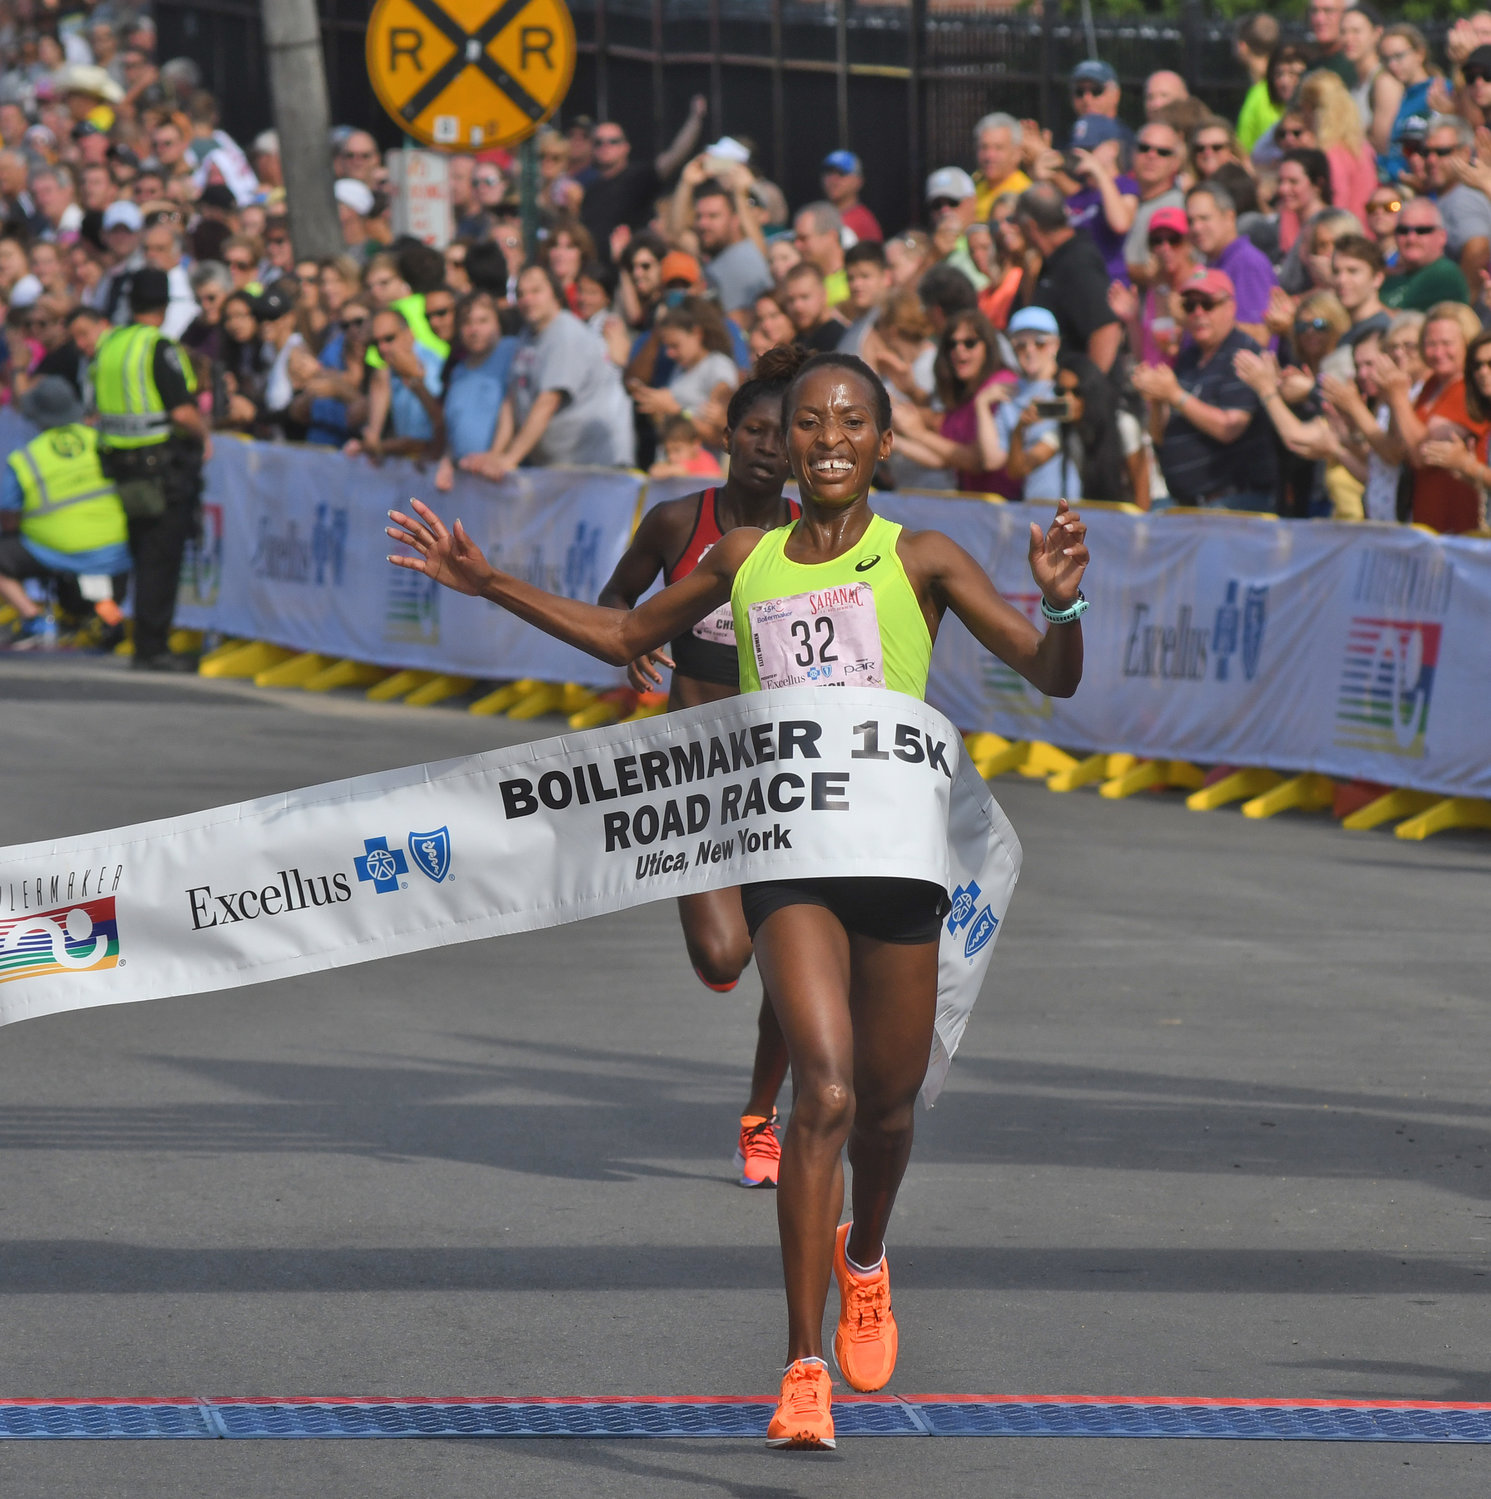 FIRST PLACE, BARELY — Caroline Rotich of Kenya finishes first among the women in the Boilermaker 15K, finishing in 49:07, just two seconds ahead of fellow Kenyan Iveen Chepkemoi in the background. Rotich was the 2015 Boston Marathon champion.